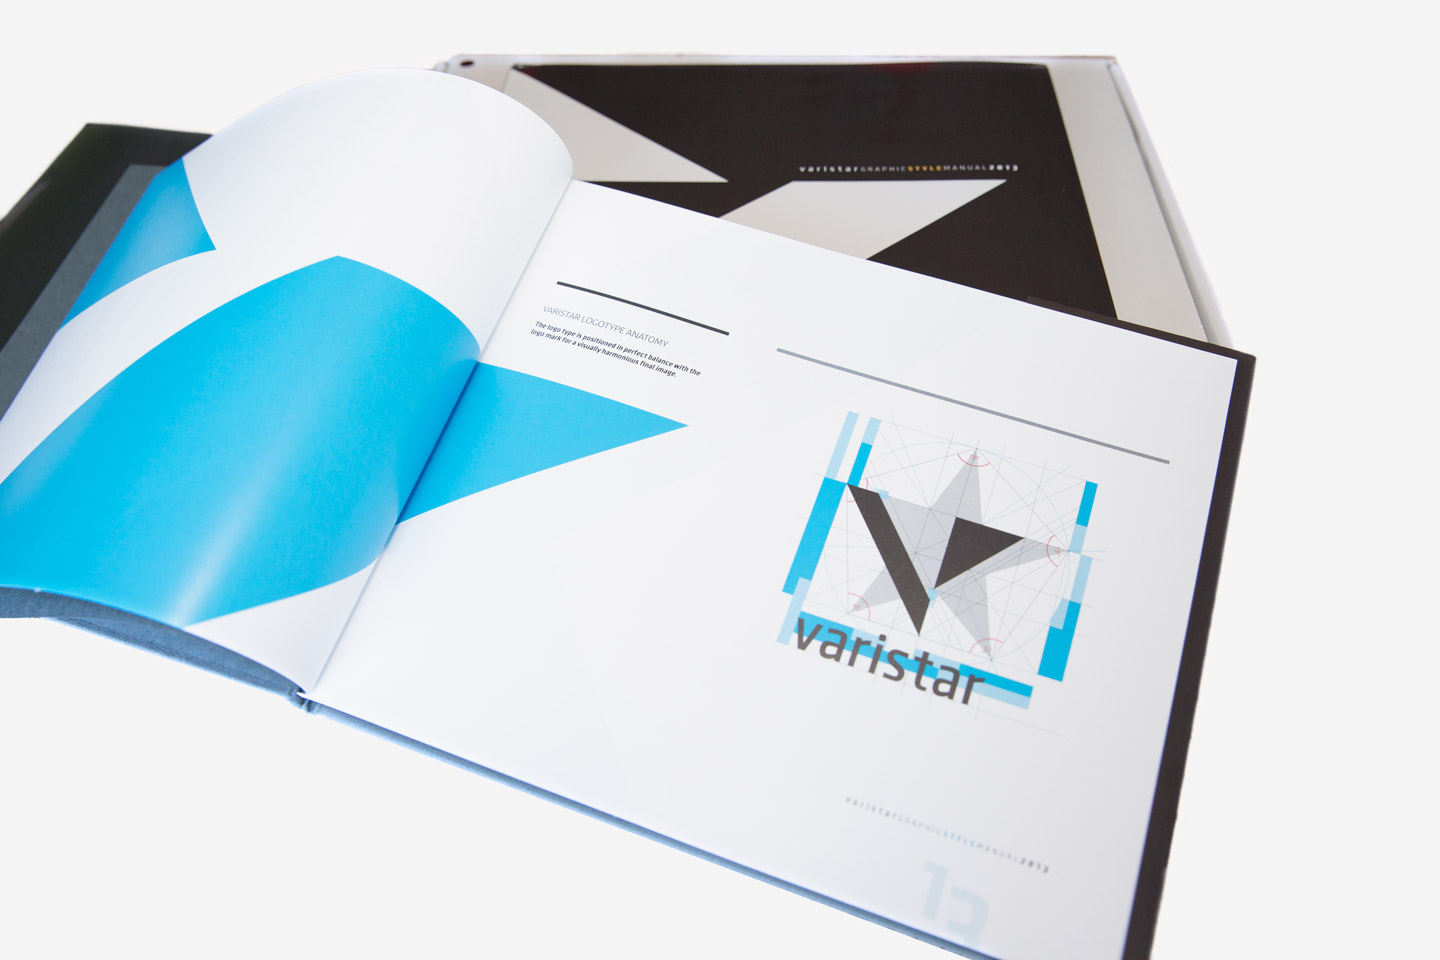 Varistar brand guideline manual open to a page showing the logo in blue and black